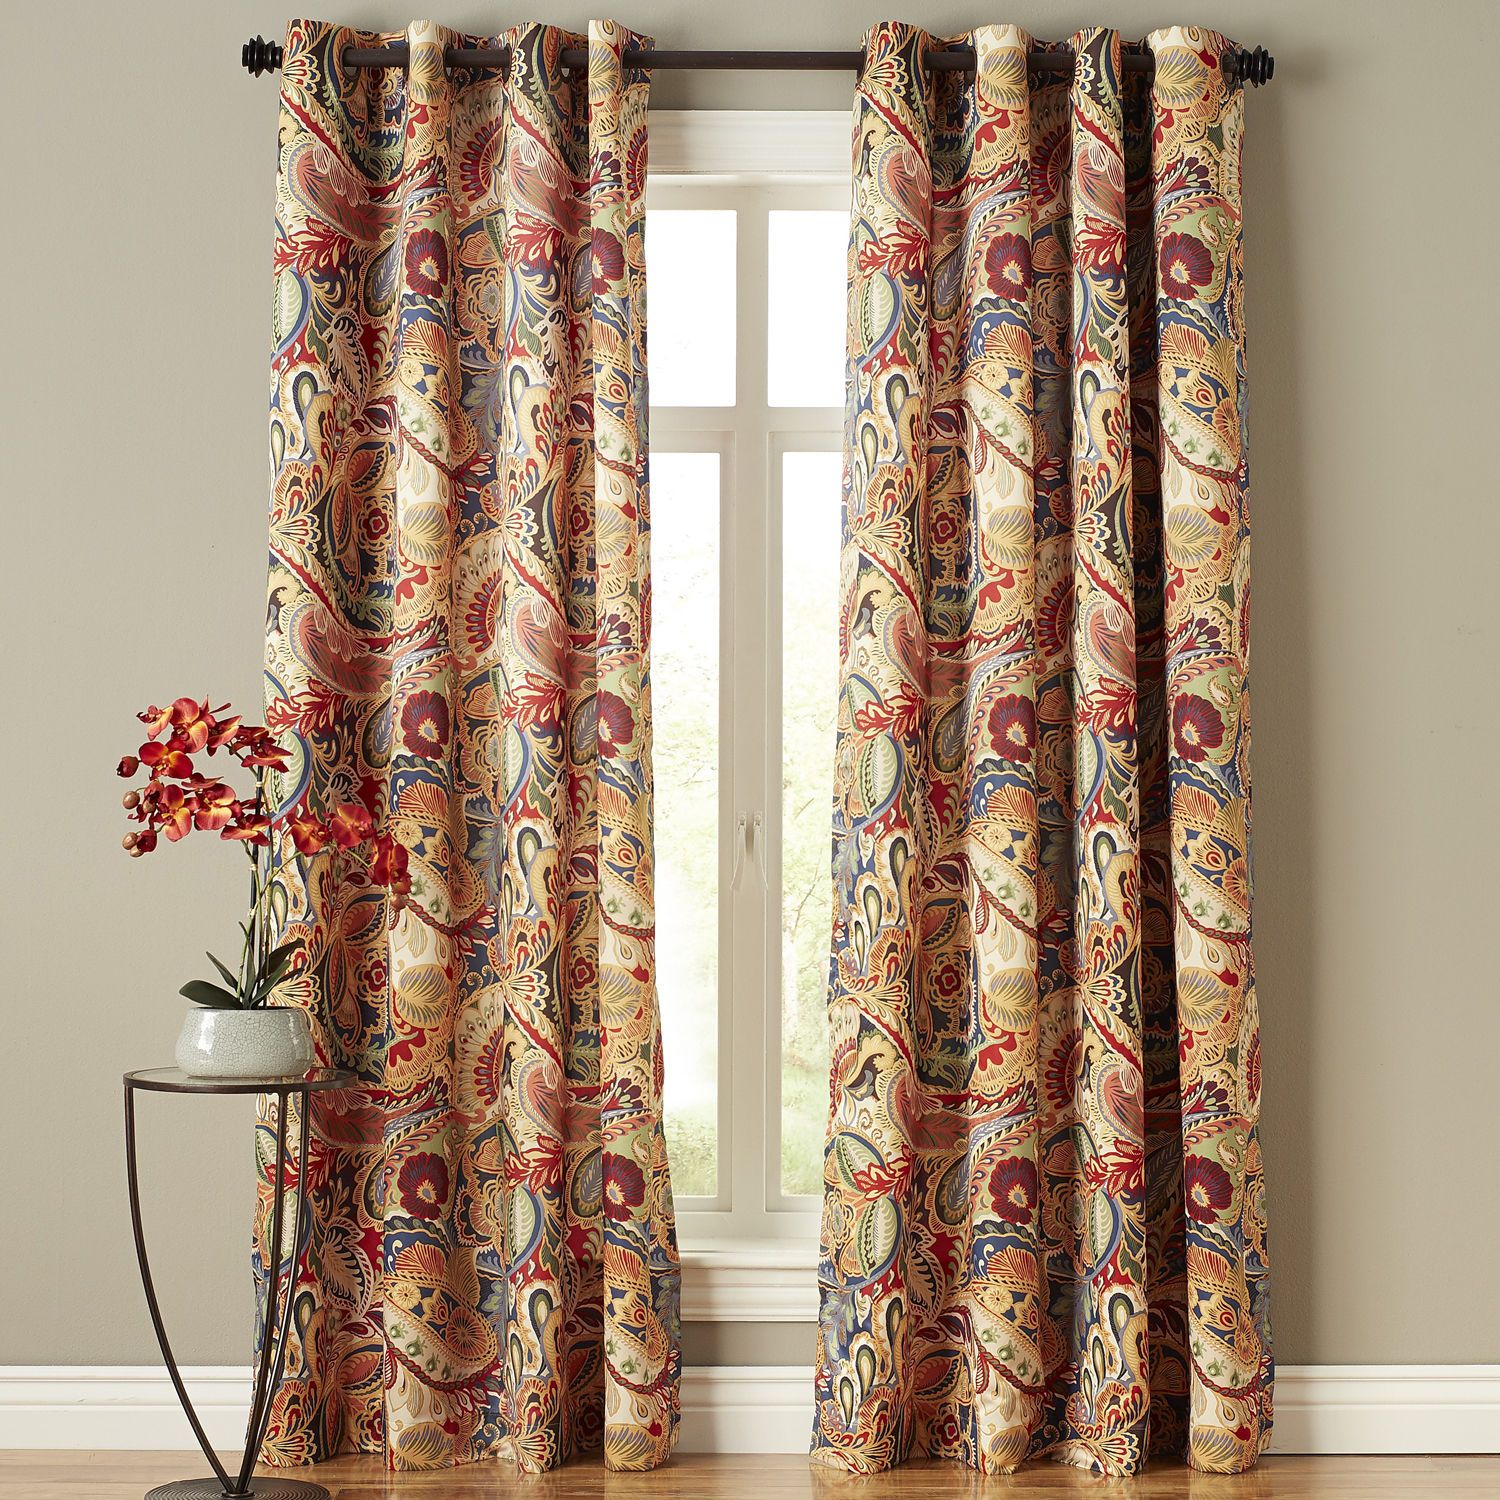 Vibrant Paisley Grommet Curtain Paisley Curtains Living